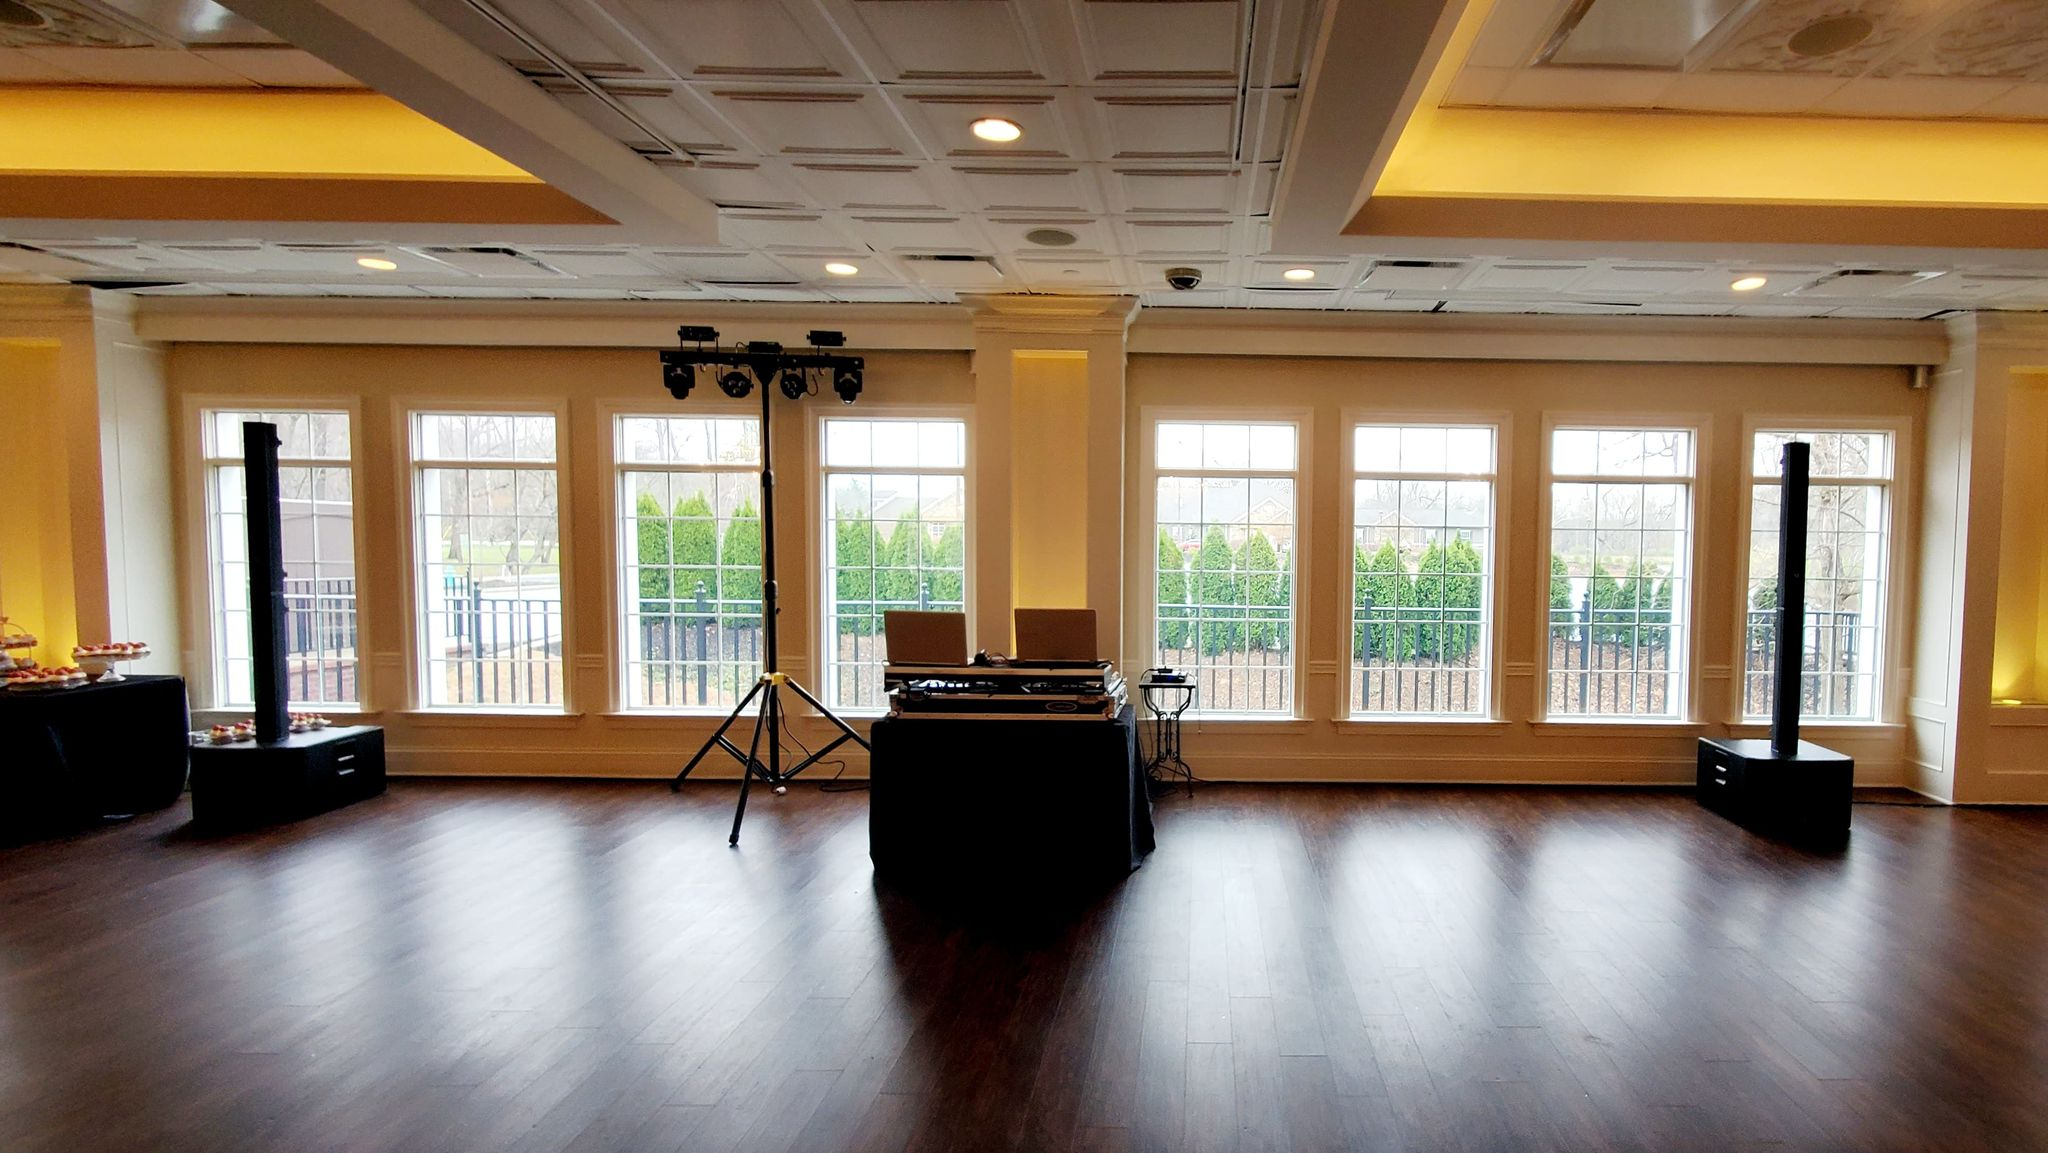 Less Is More when it comes to wedding dj set ups